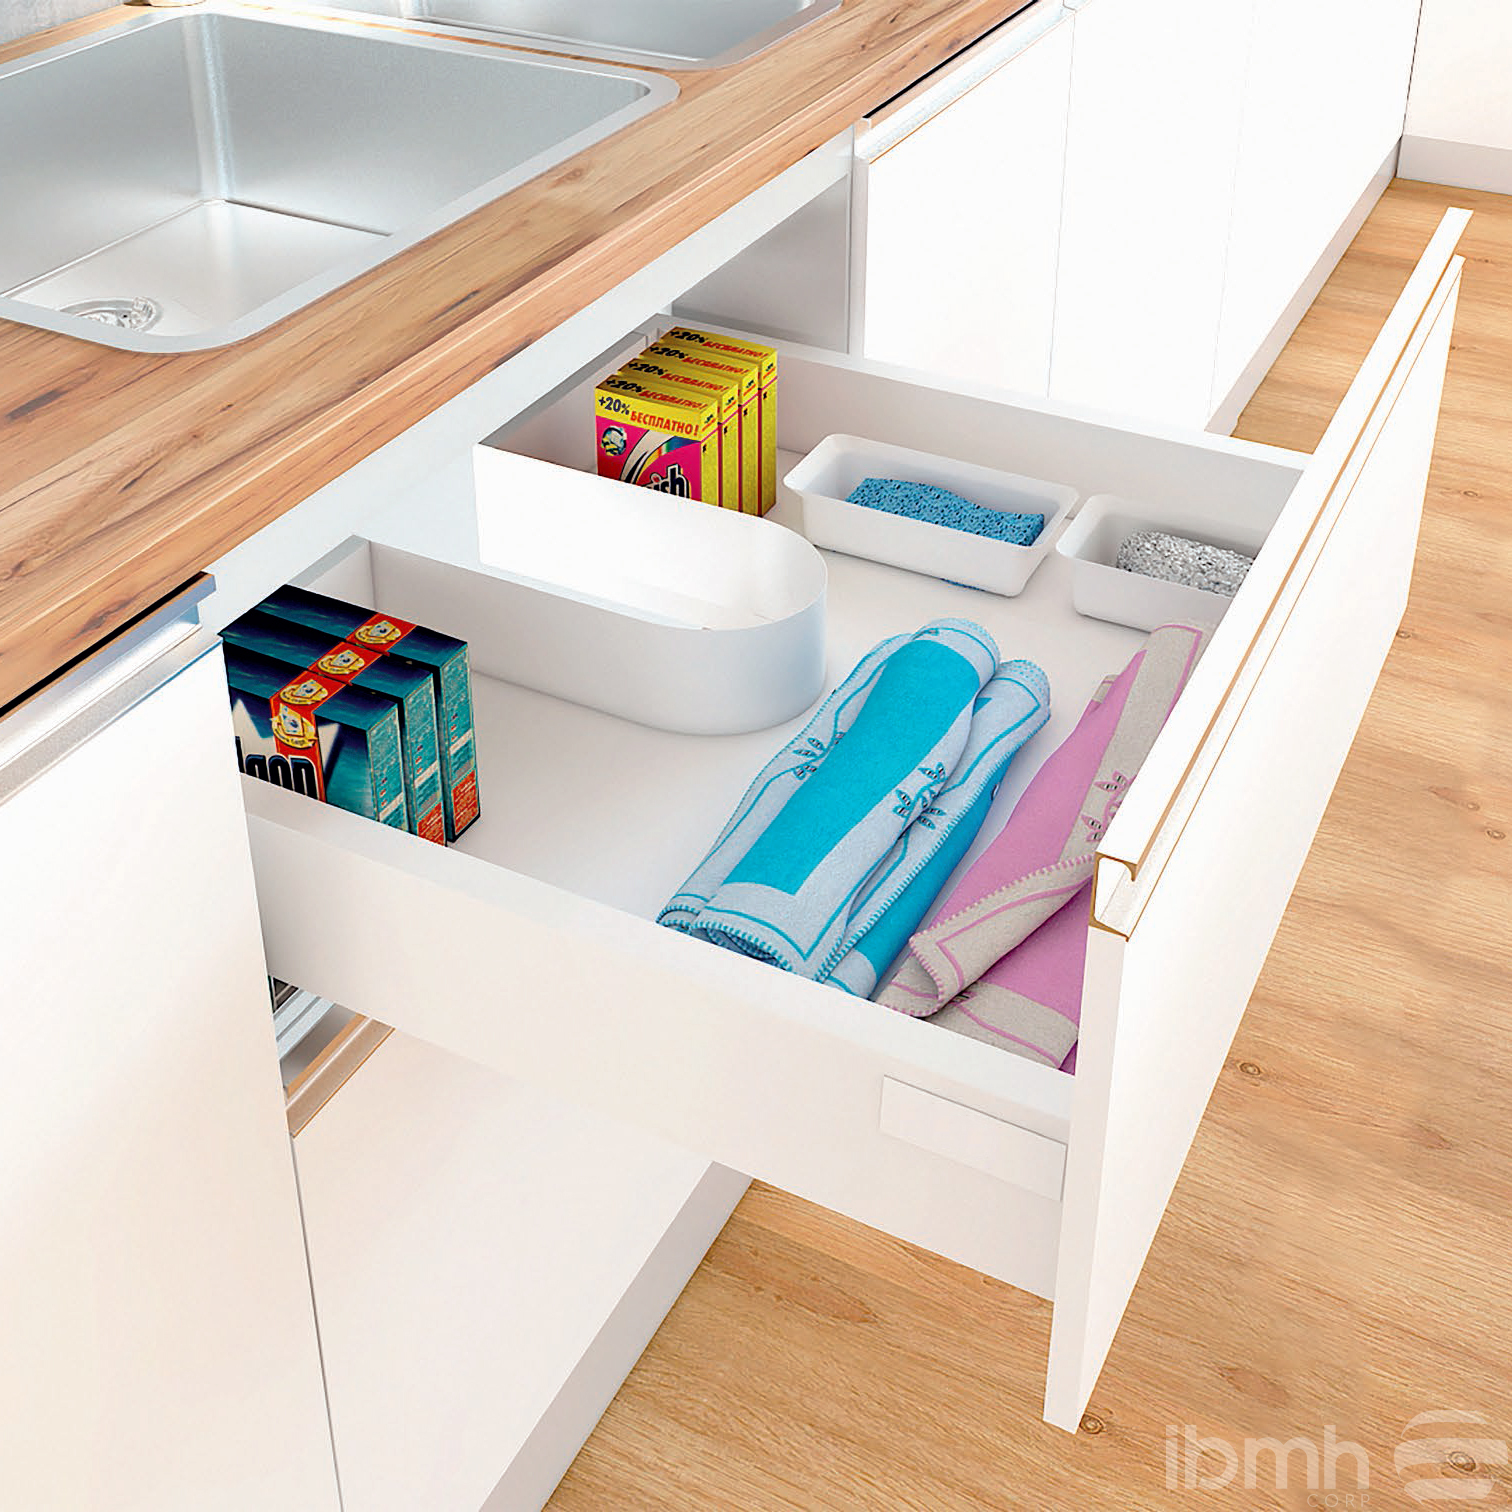 IMPORT FROM CHINA:U Shaped Sink Drawer Under Sink U Shaped Metal Back Panel for Drawers U-Form Undersink  U-fittings for Under Sinks U-Fixture for Under-Sink Furniture U Shape Sink